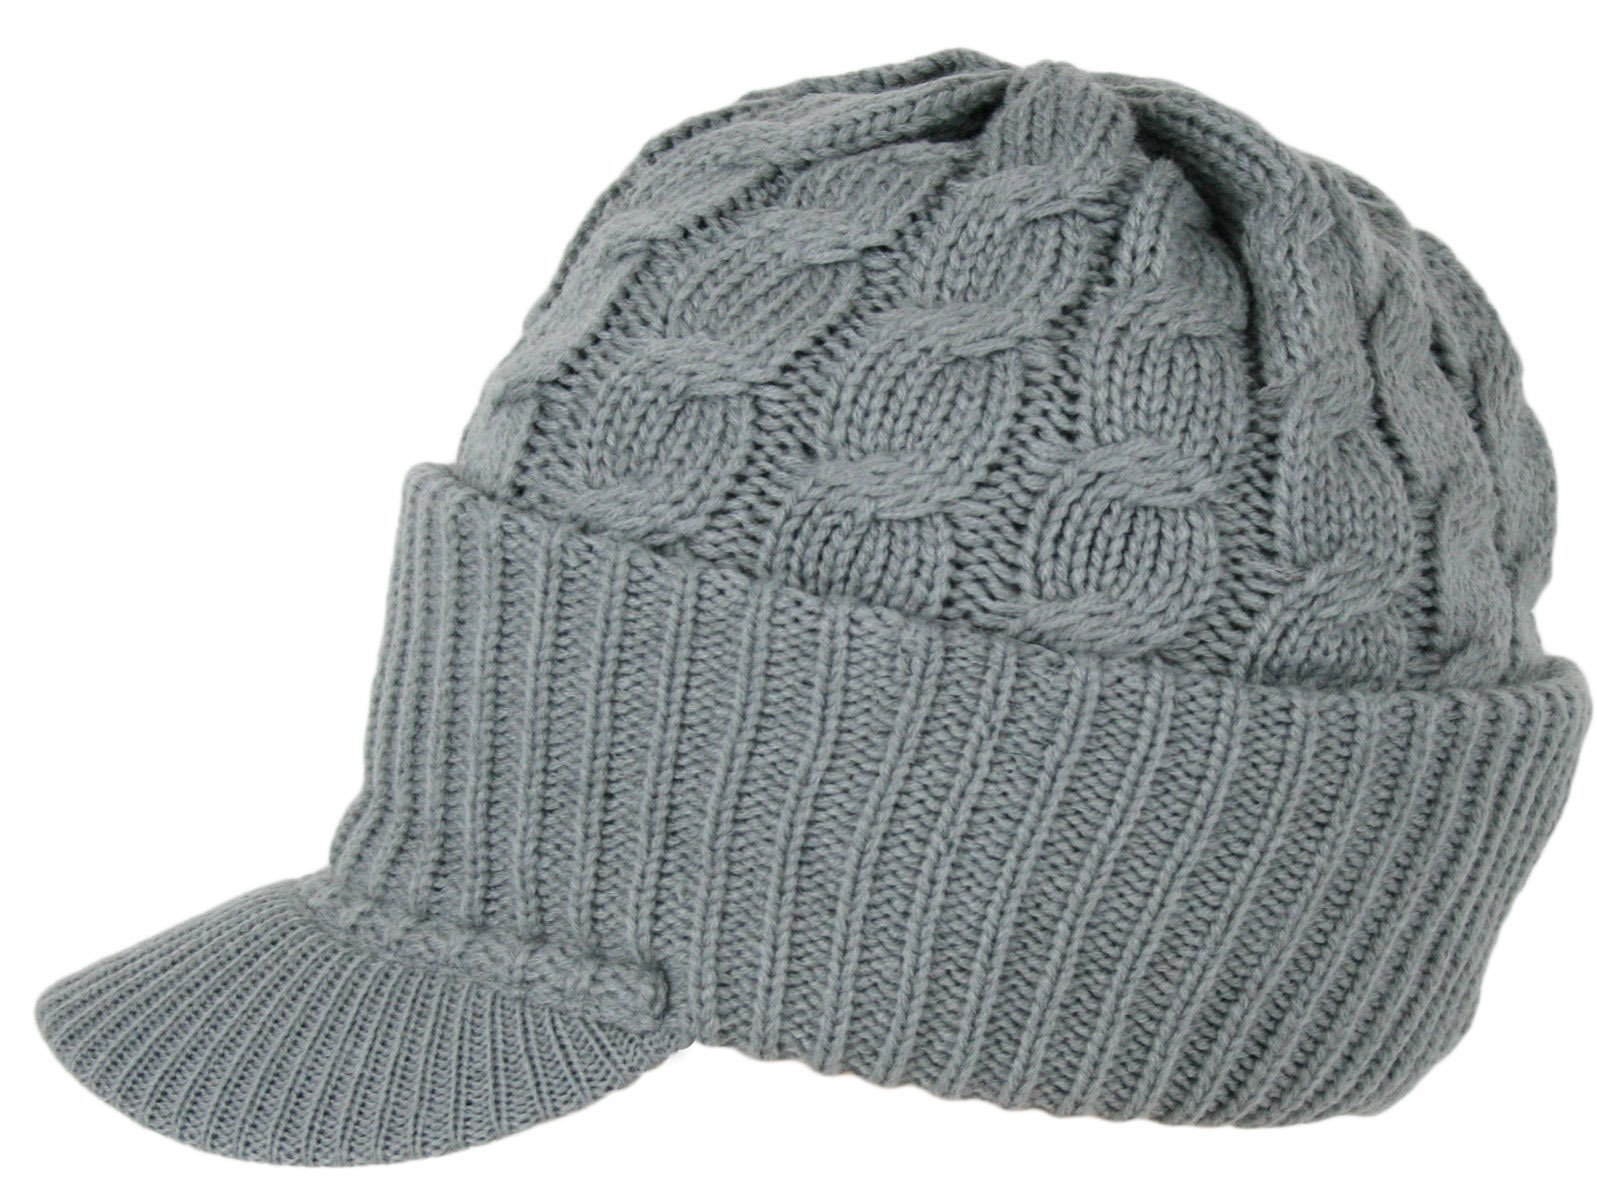 5c7757098bd Urbanhatshop Newsboy Cable Knitted Visor Beanie Bill Winter Warm Hat All  Colors (Gray) Apparel